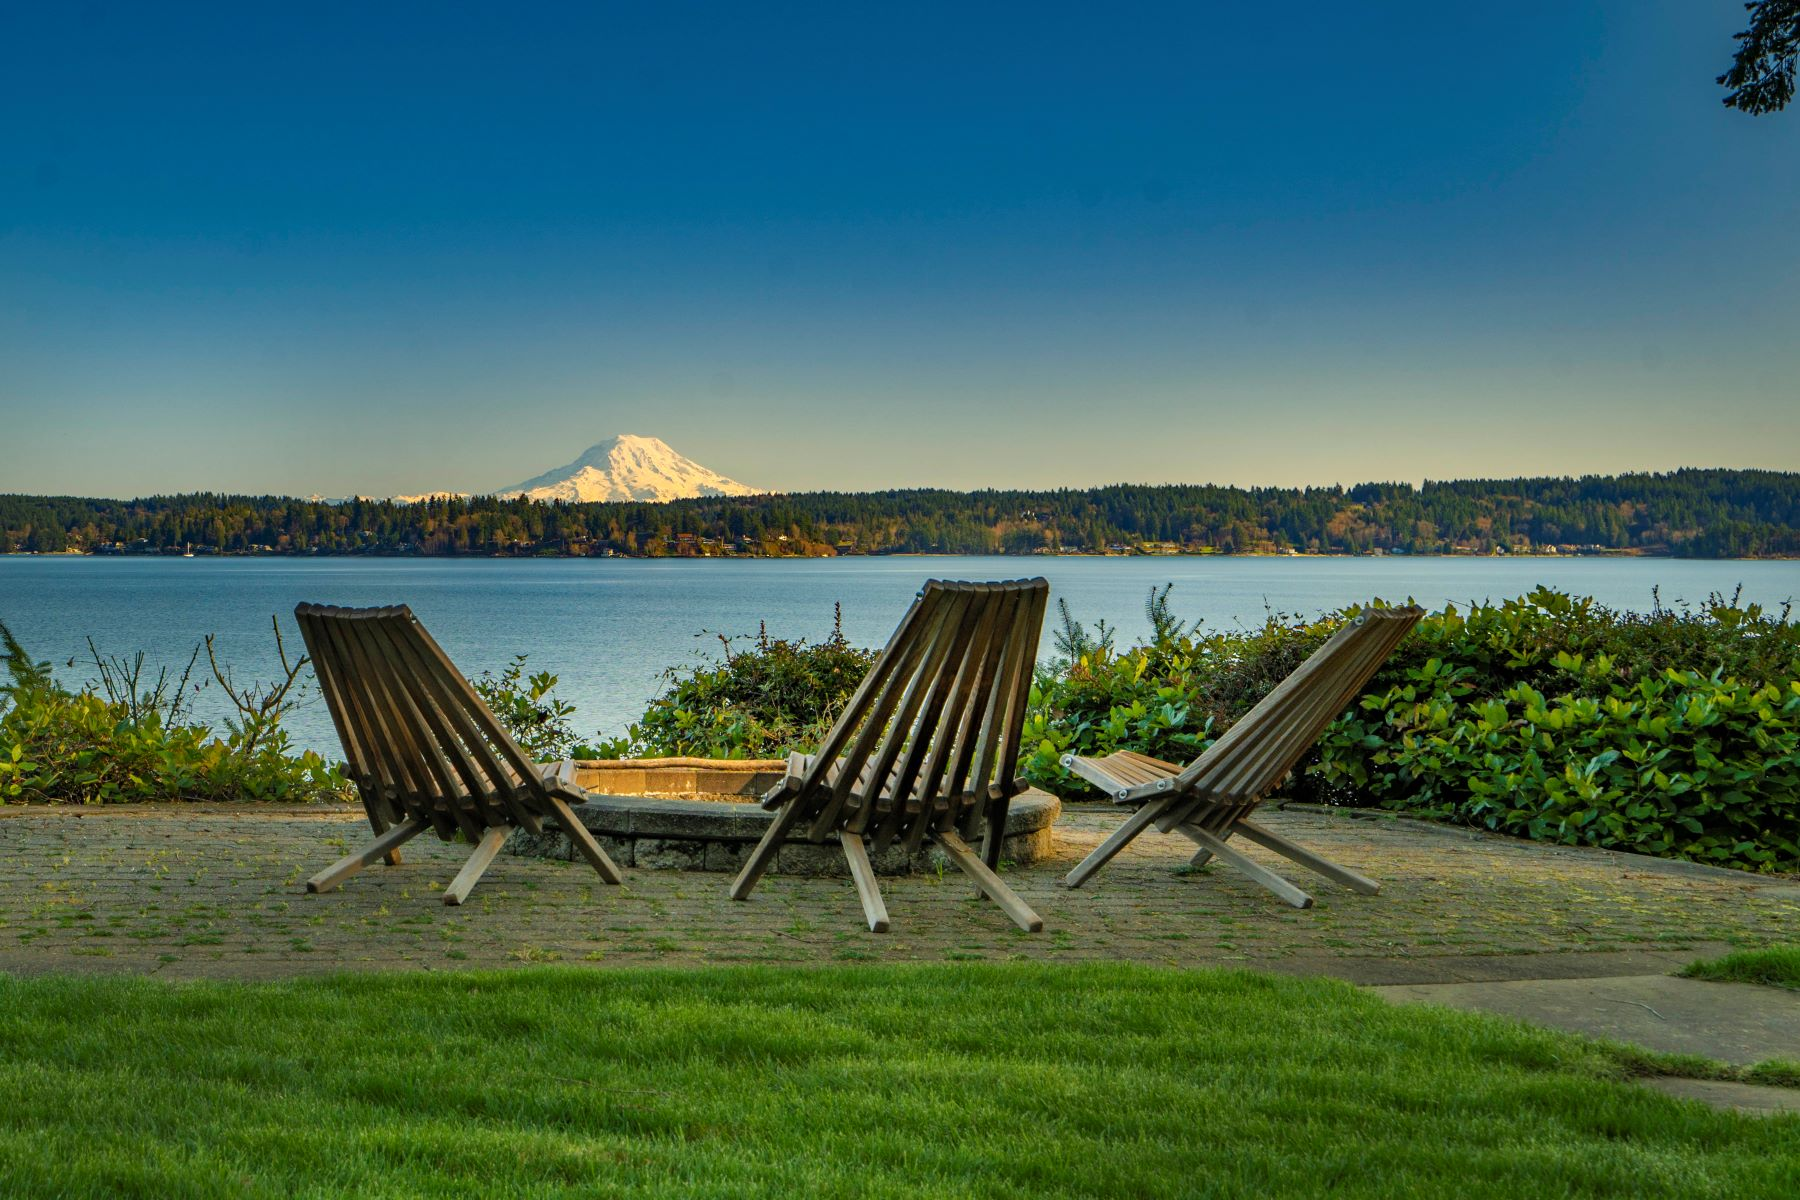 Single Family Homes for Sale at LightHouseInspired.com 13020 Thomas Road NW, Gig Harbor, Washington 98329 United States